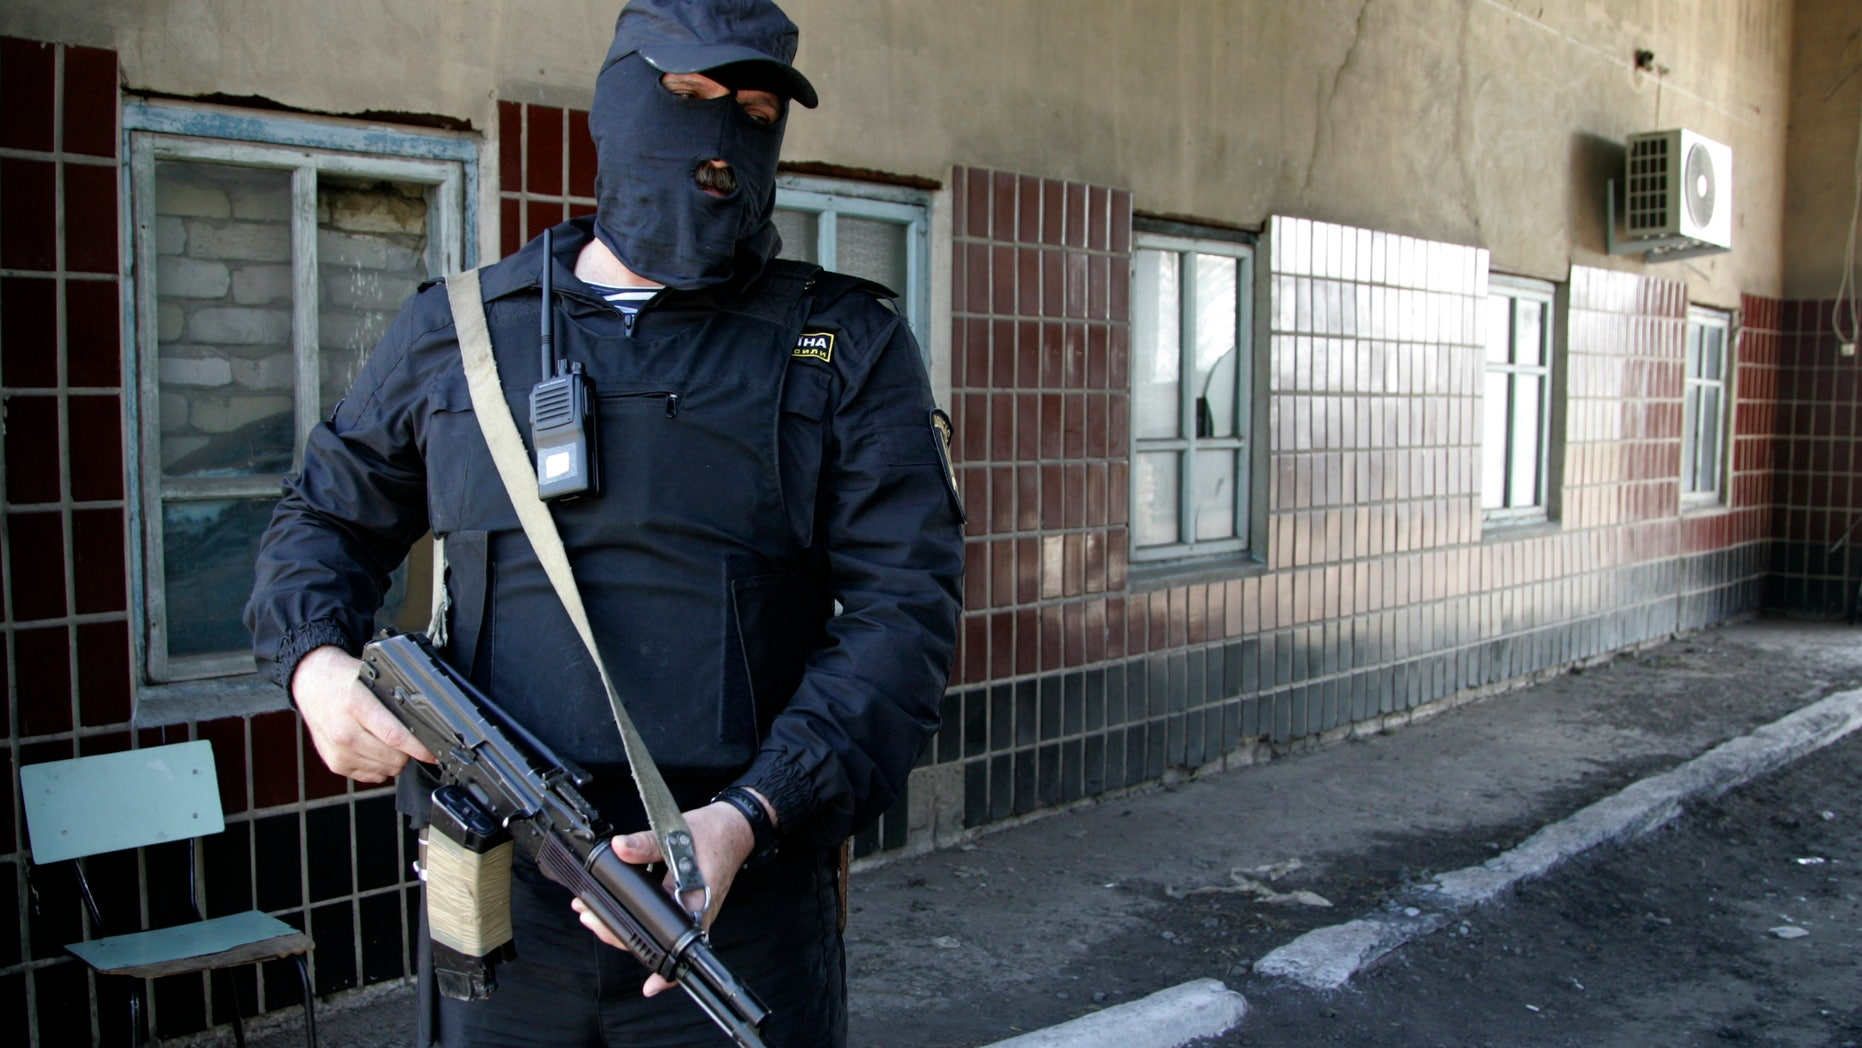 May 16, 2014 - An armed man of the Donbass Battalion, a non-affiliated militia group that has stated its intent to fight in support of Ukrainian unity, is on guard at a base near Donetsk, eastern Ukraine.  The group says it has reclaimed Velyka Novosilka from pro-Russian separatists with the self-styled Donetsk Peoples Republic, an anti-government movement that has over the past few weeks been seizing government offices and declared its intent to merge the Donetsk region with Russia.